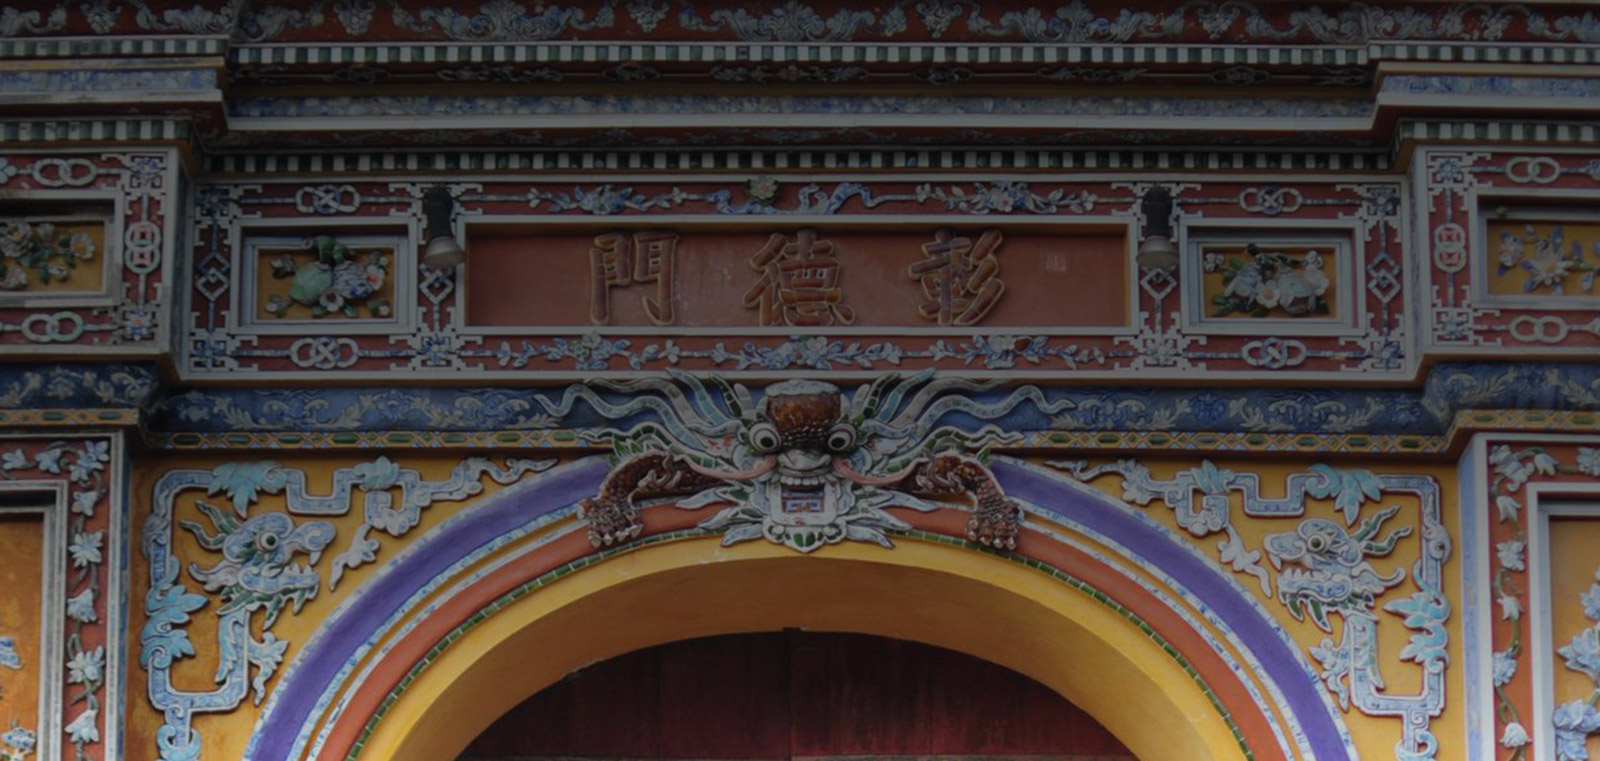 Ceramics And Porcelain Joinery During Nguyen Dynasty - Embrace The Beauty Of Broken Pieces - Hue Citadel